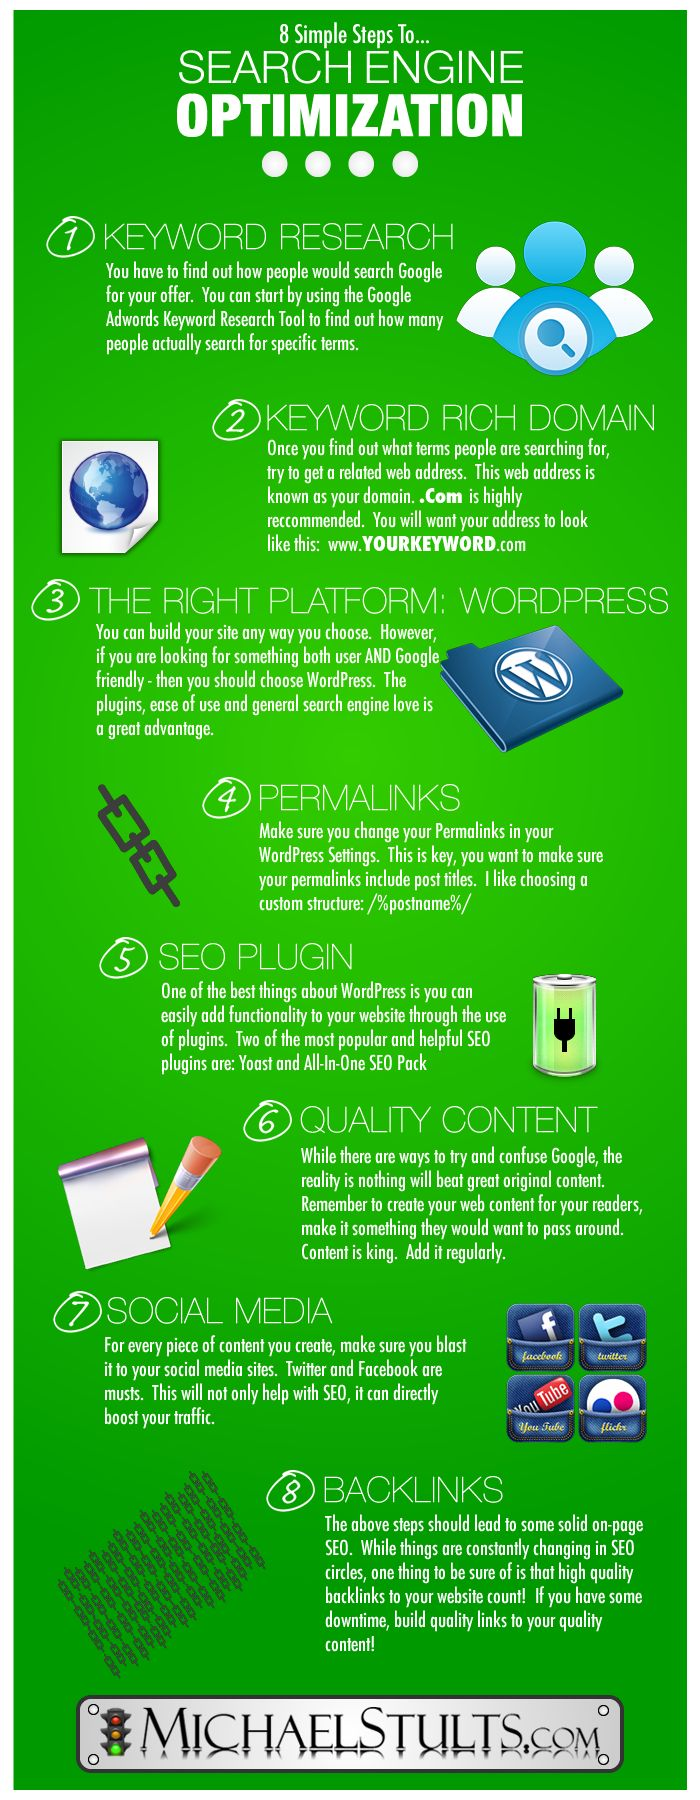 8 SIMPLE STEPS TO SEARCH ENGINE OPTIMIZATION #seo